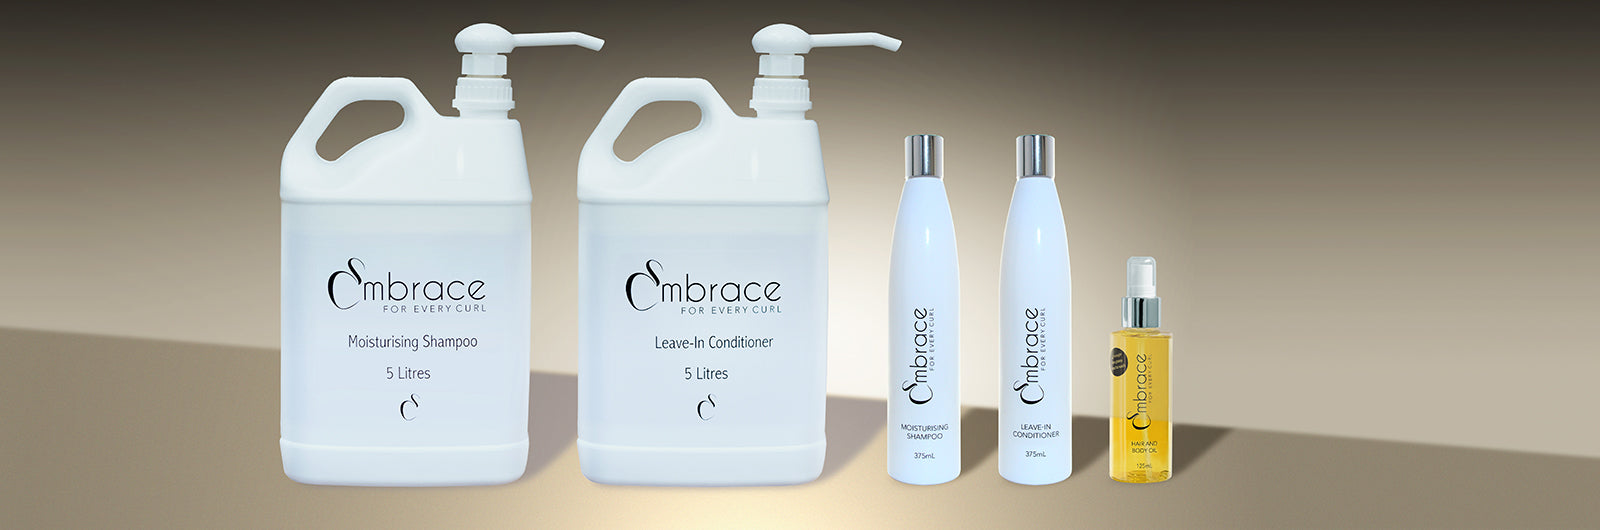 embrace hair care products